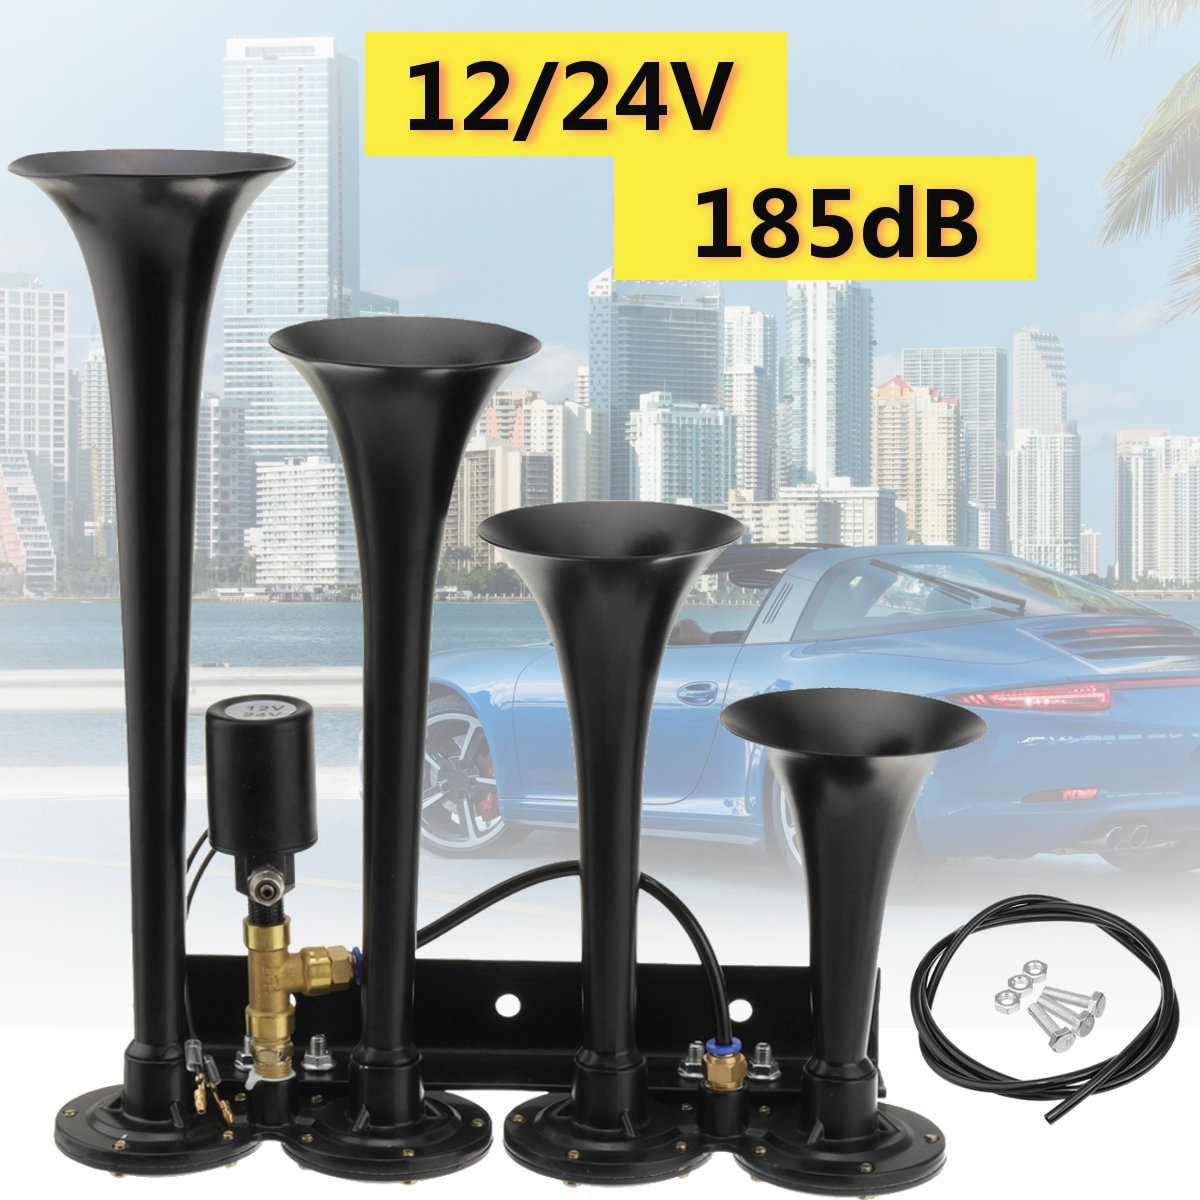 12V-24V 185DB Super Loud 4 Trumpet Air Horn Black / Silver For CAR/TRUCK/BOAT/TRAIN Trailer Vehicle